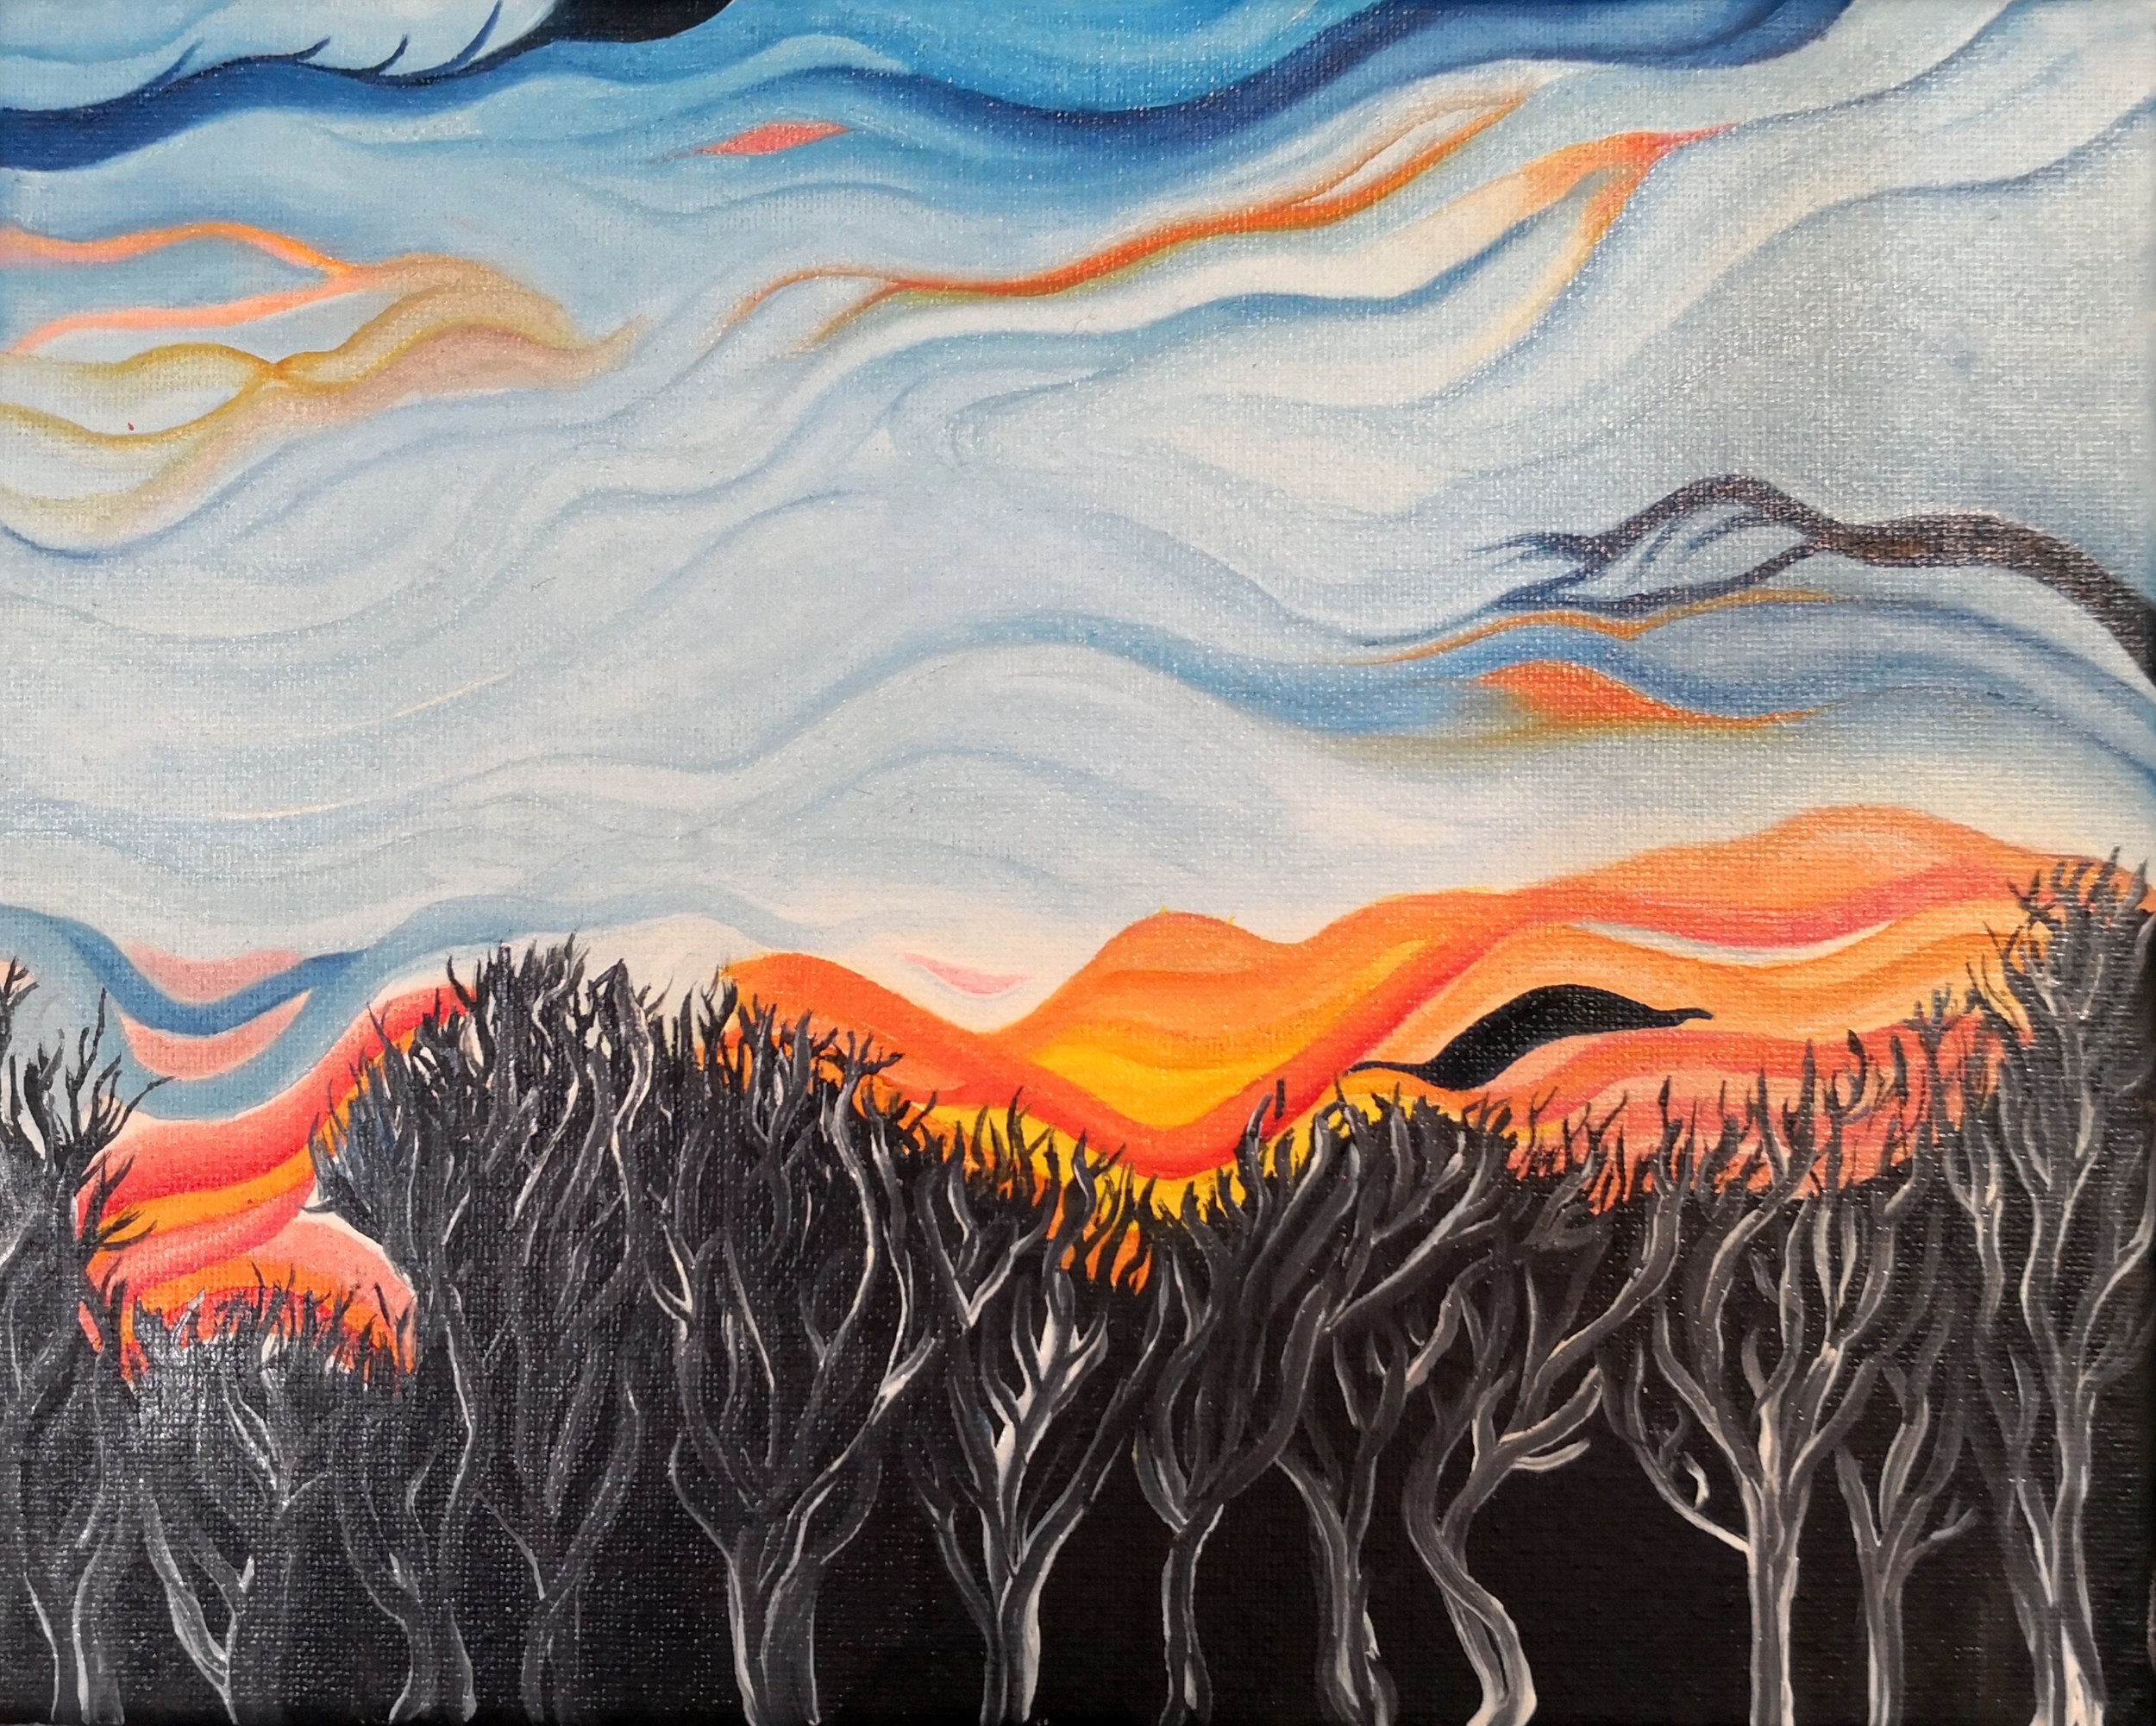 Stephen Coppola, Abstract Sunset, Oil on canvas, 8 x 10 inches (20.3 x 25.4 cm)